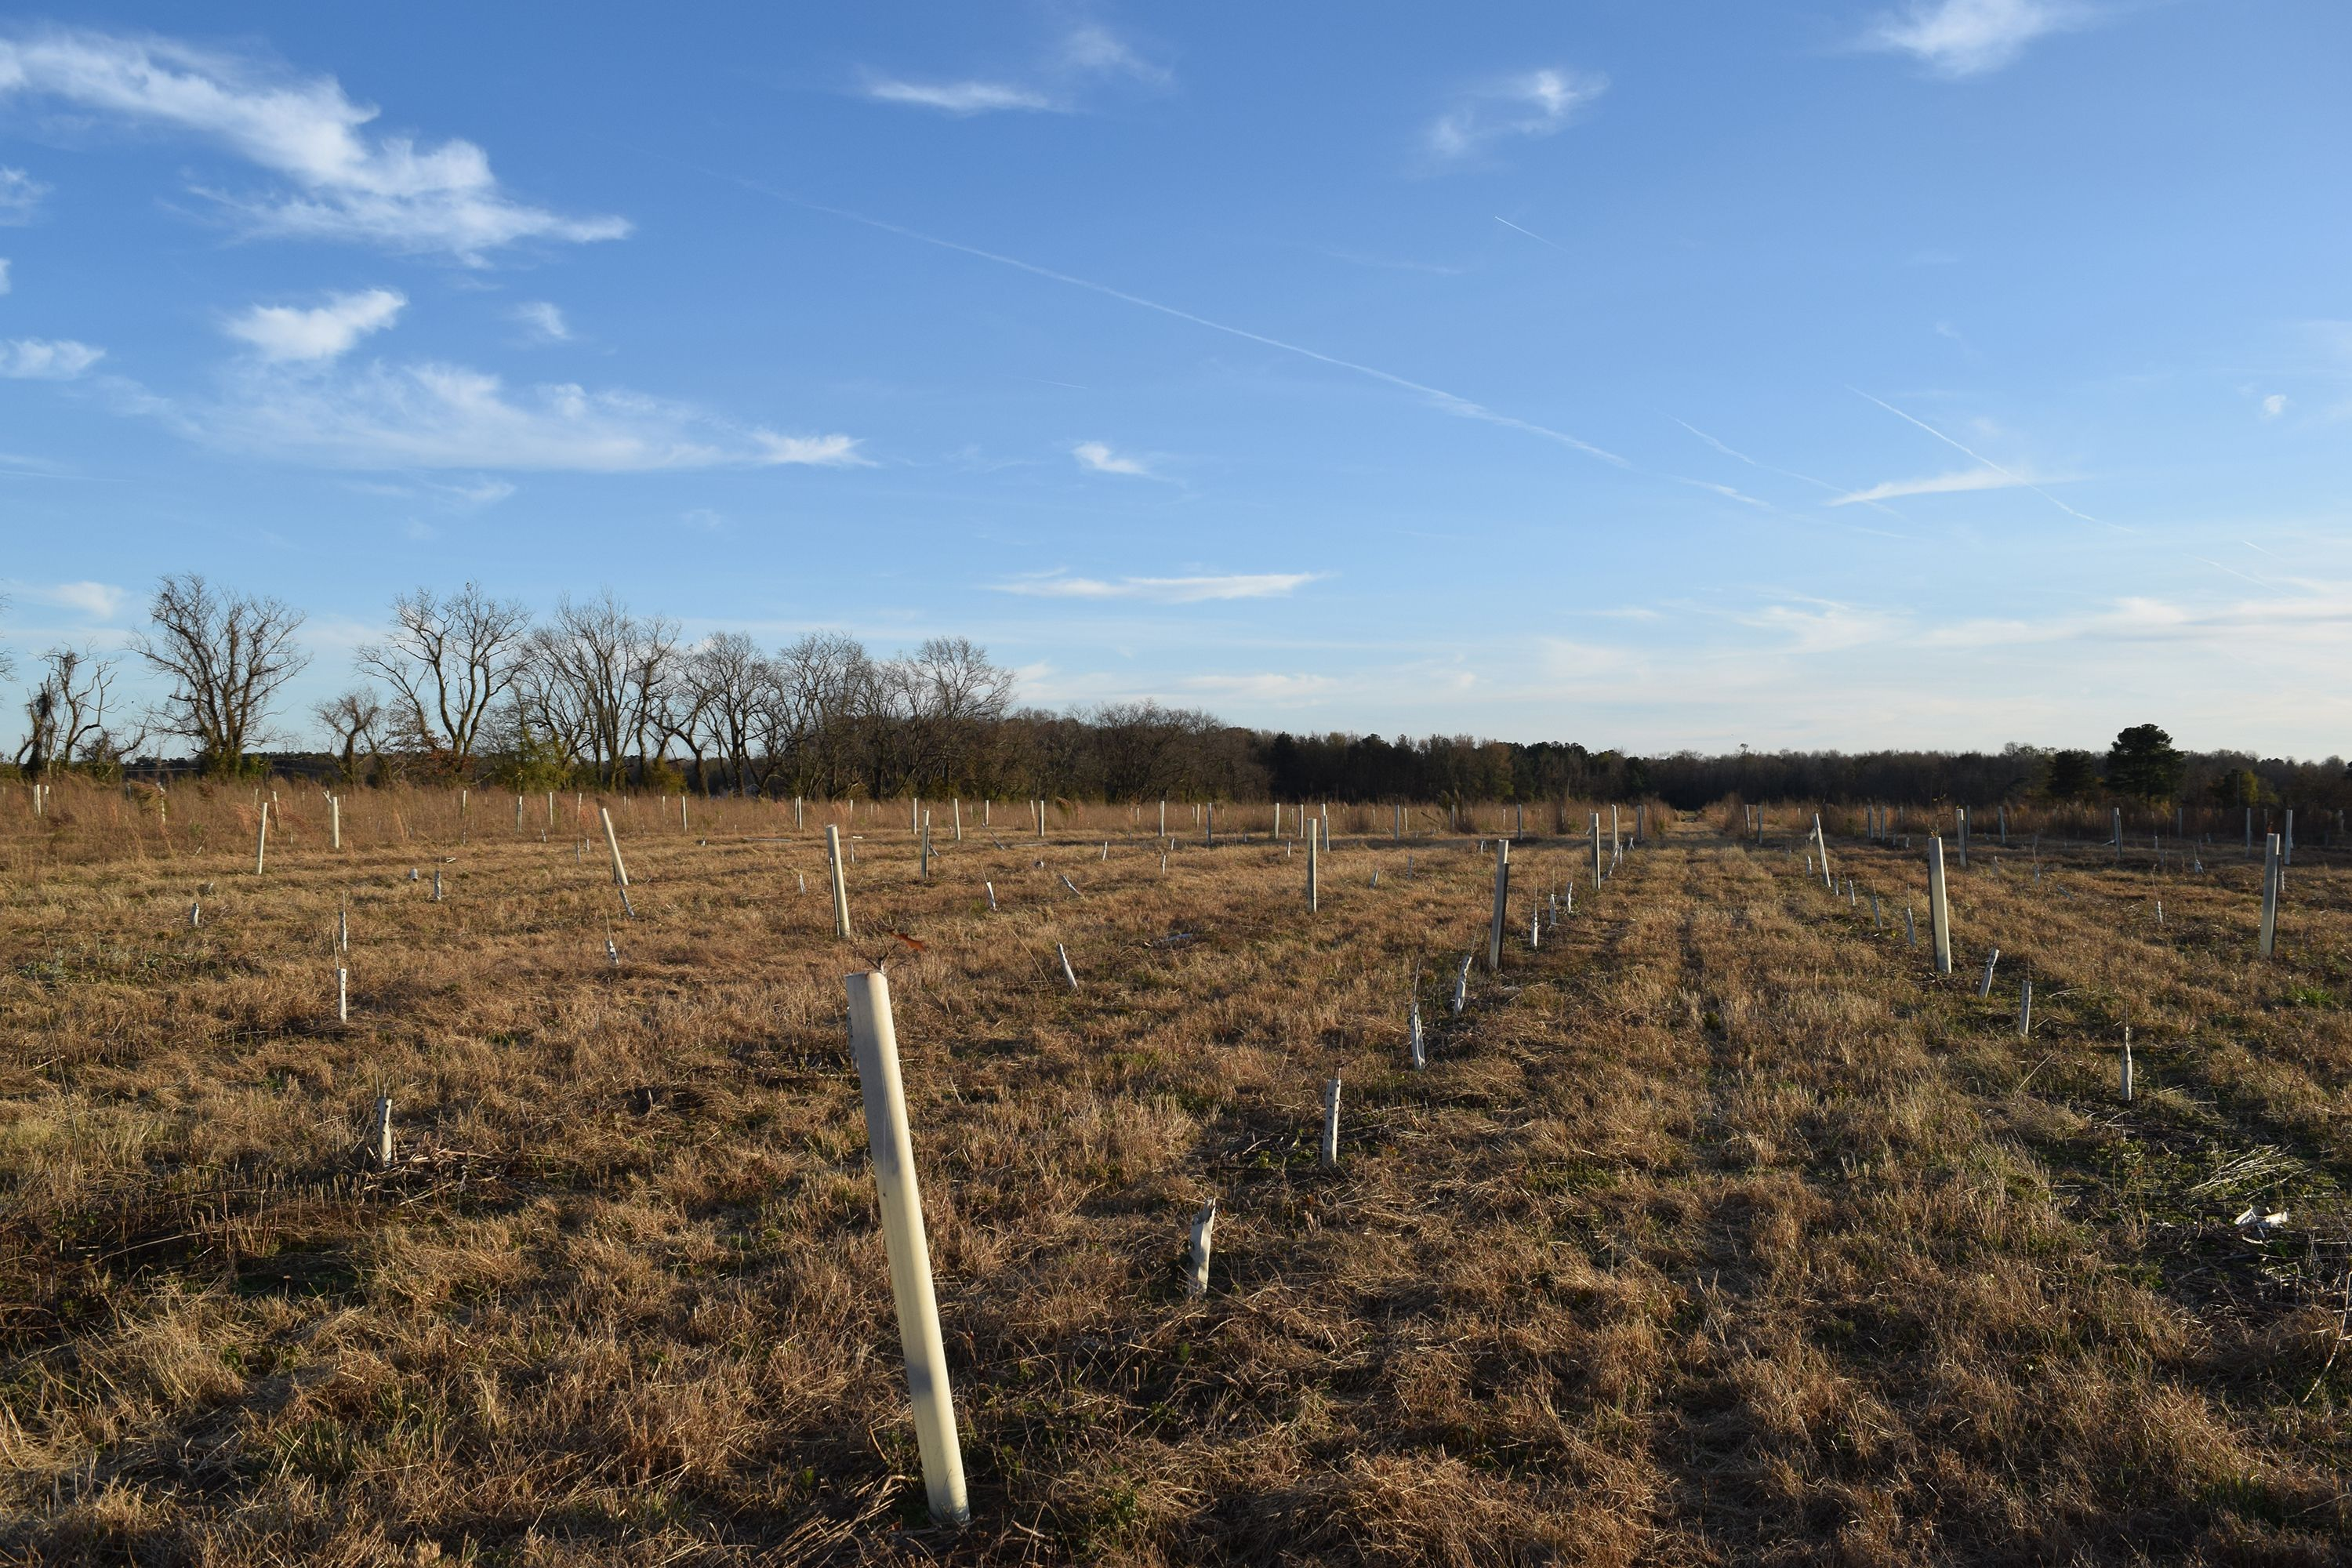 Rows of tall white plastic tubes fill an open field. Shorter cardboard tree shelters fill in the rows between the tubes.